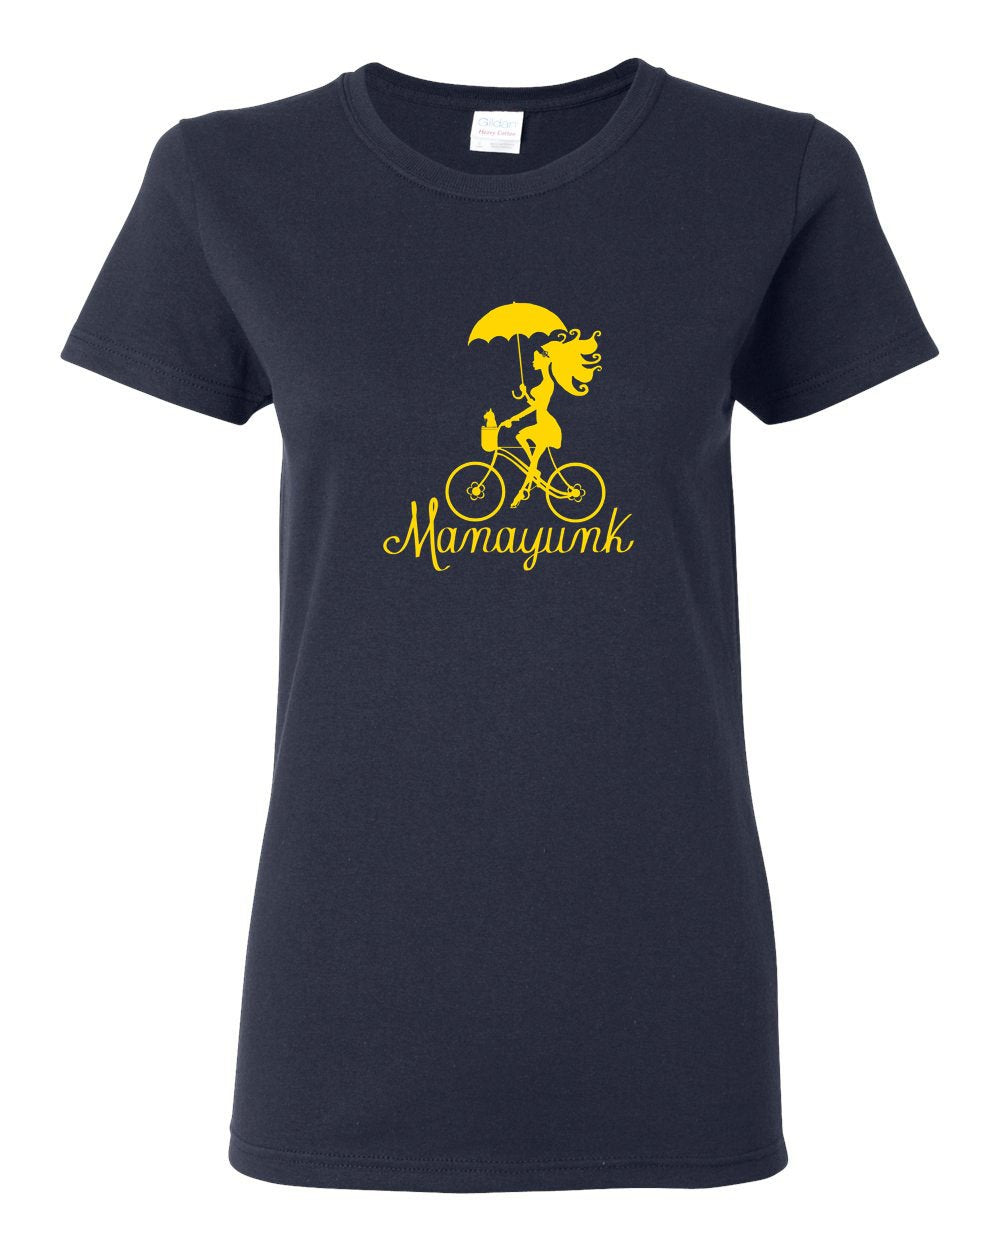 Manayunk Bike LADIES Missy-Fit T-Shirt